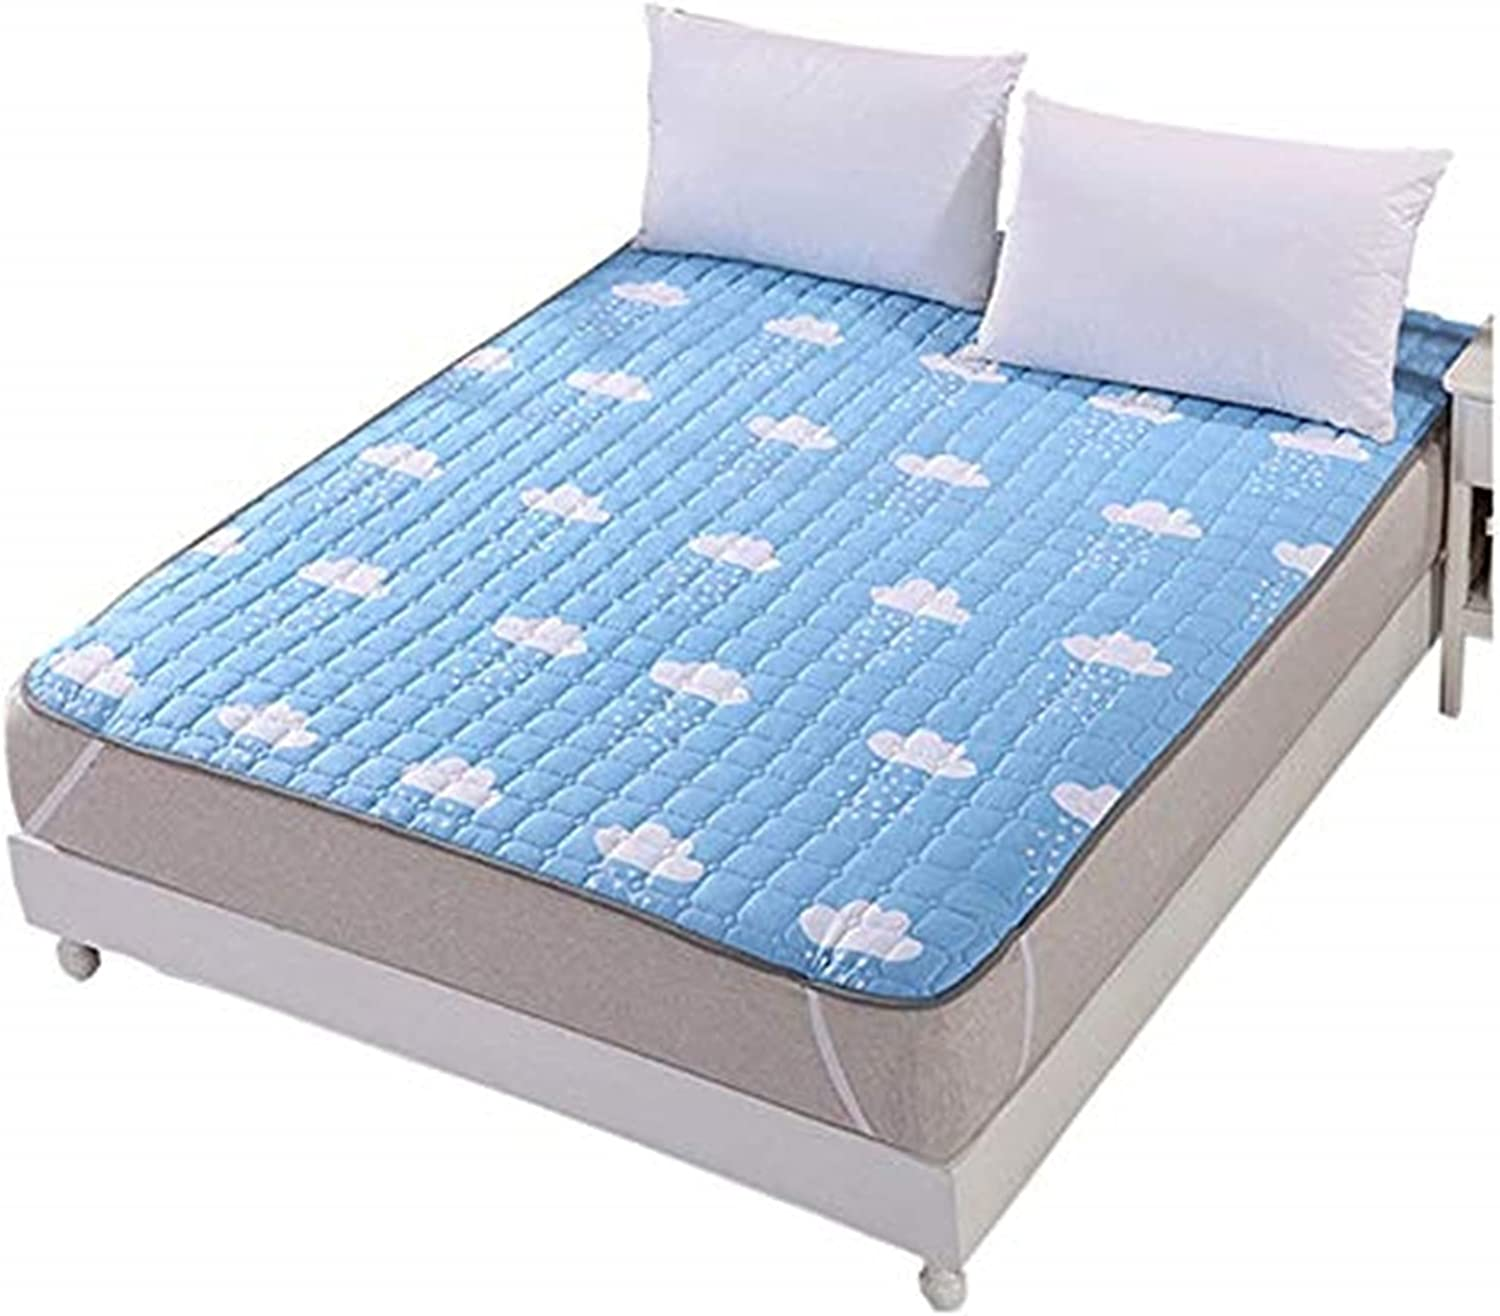 DevileLover Folding 4 years warranty Futon Today's only Mattress- Soft Durable Padd Mat Tatami